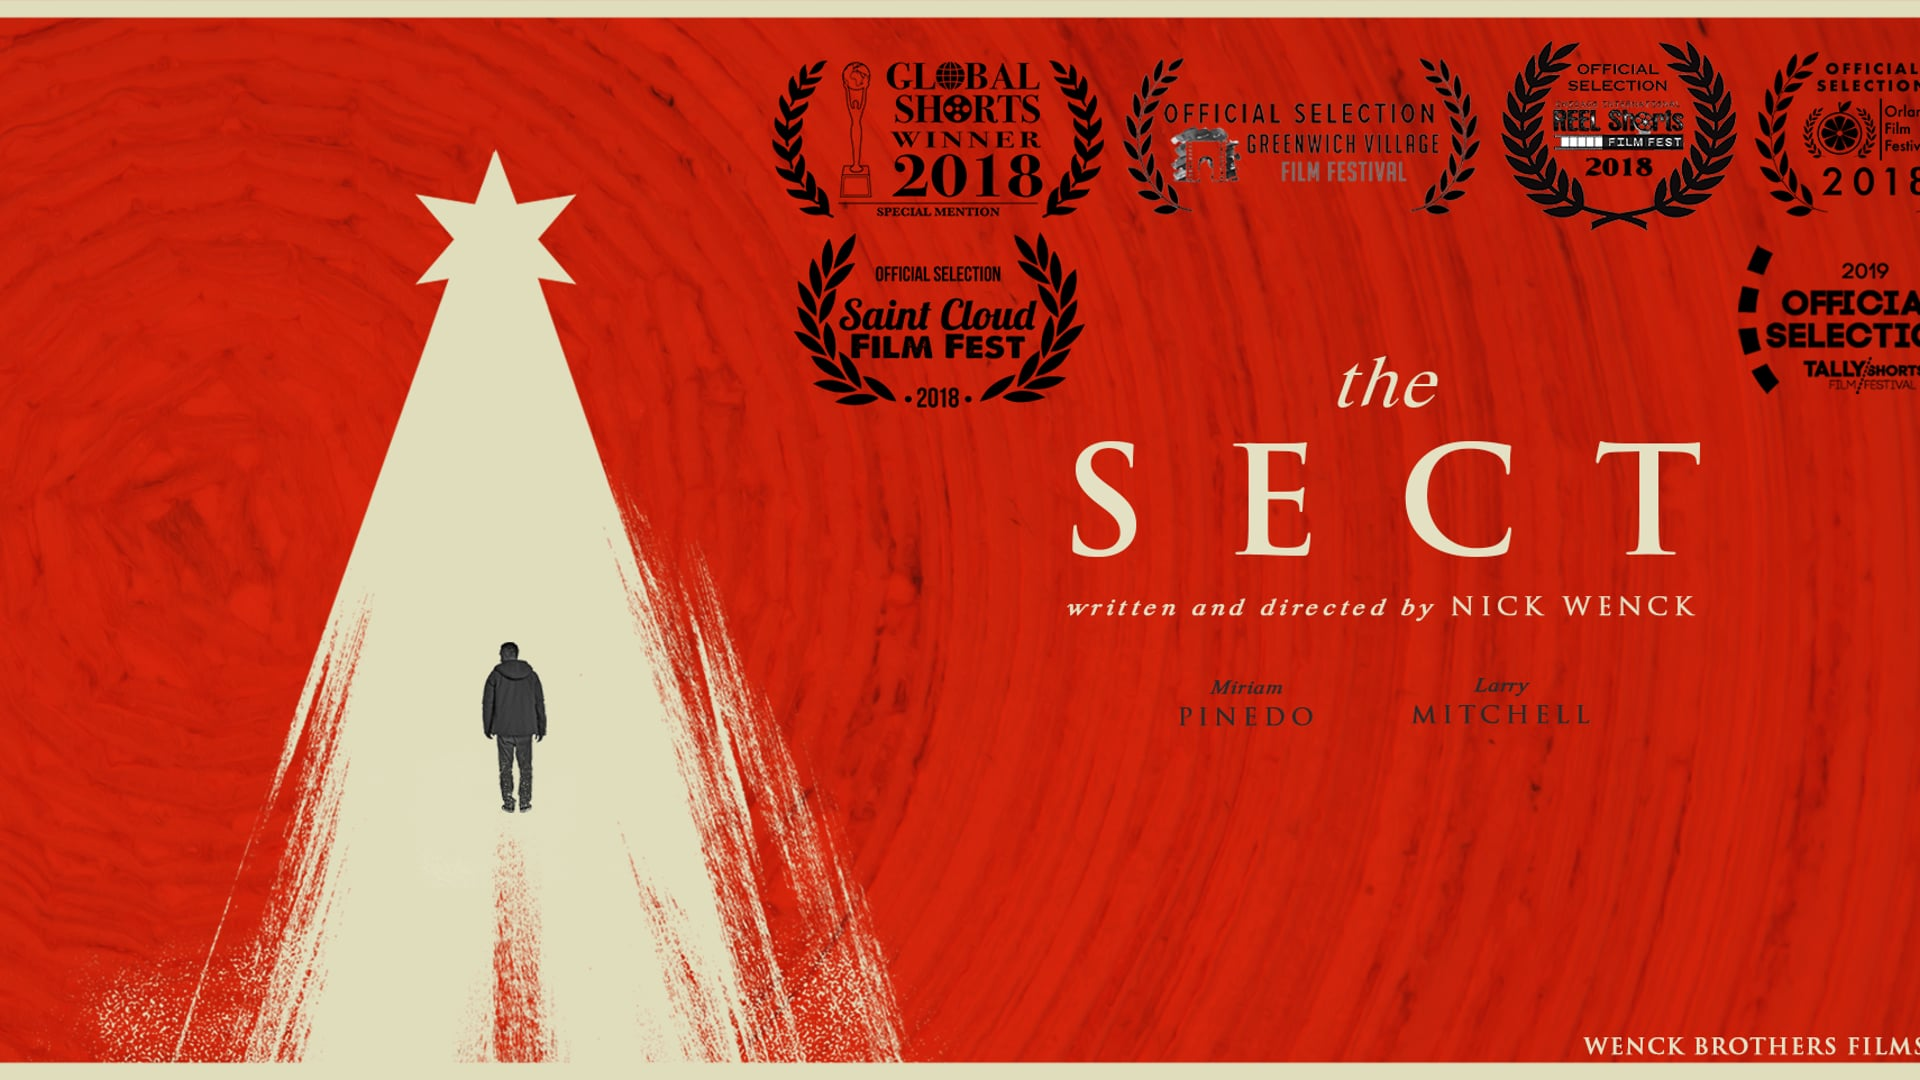 The Sect (2018)